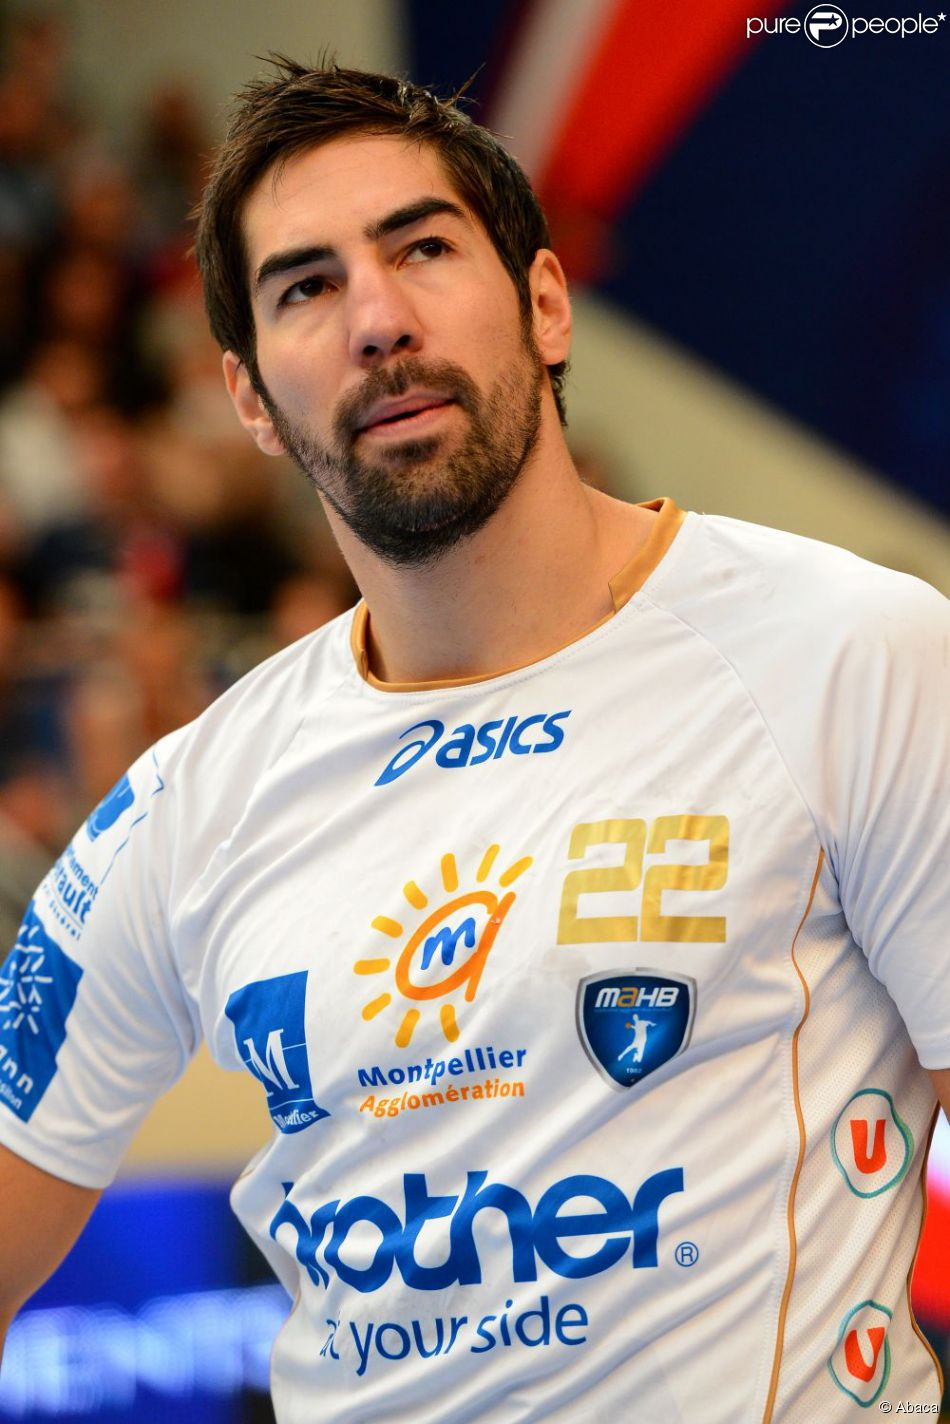 Nikola Karabatic à Paris le 30 septembre 2012